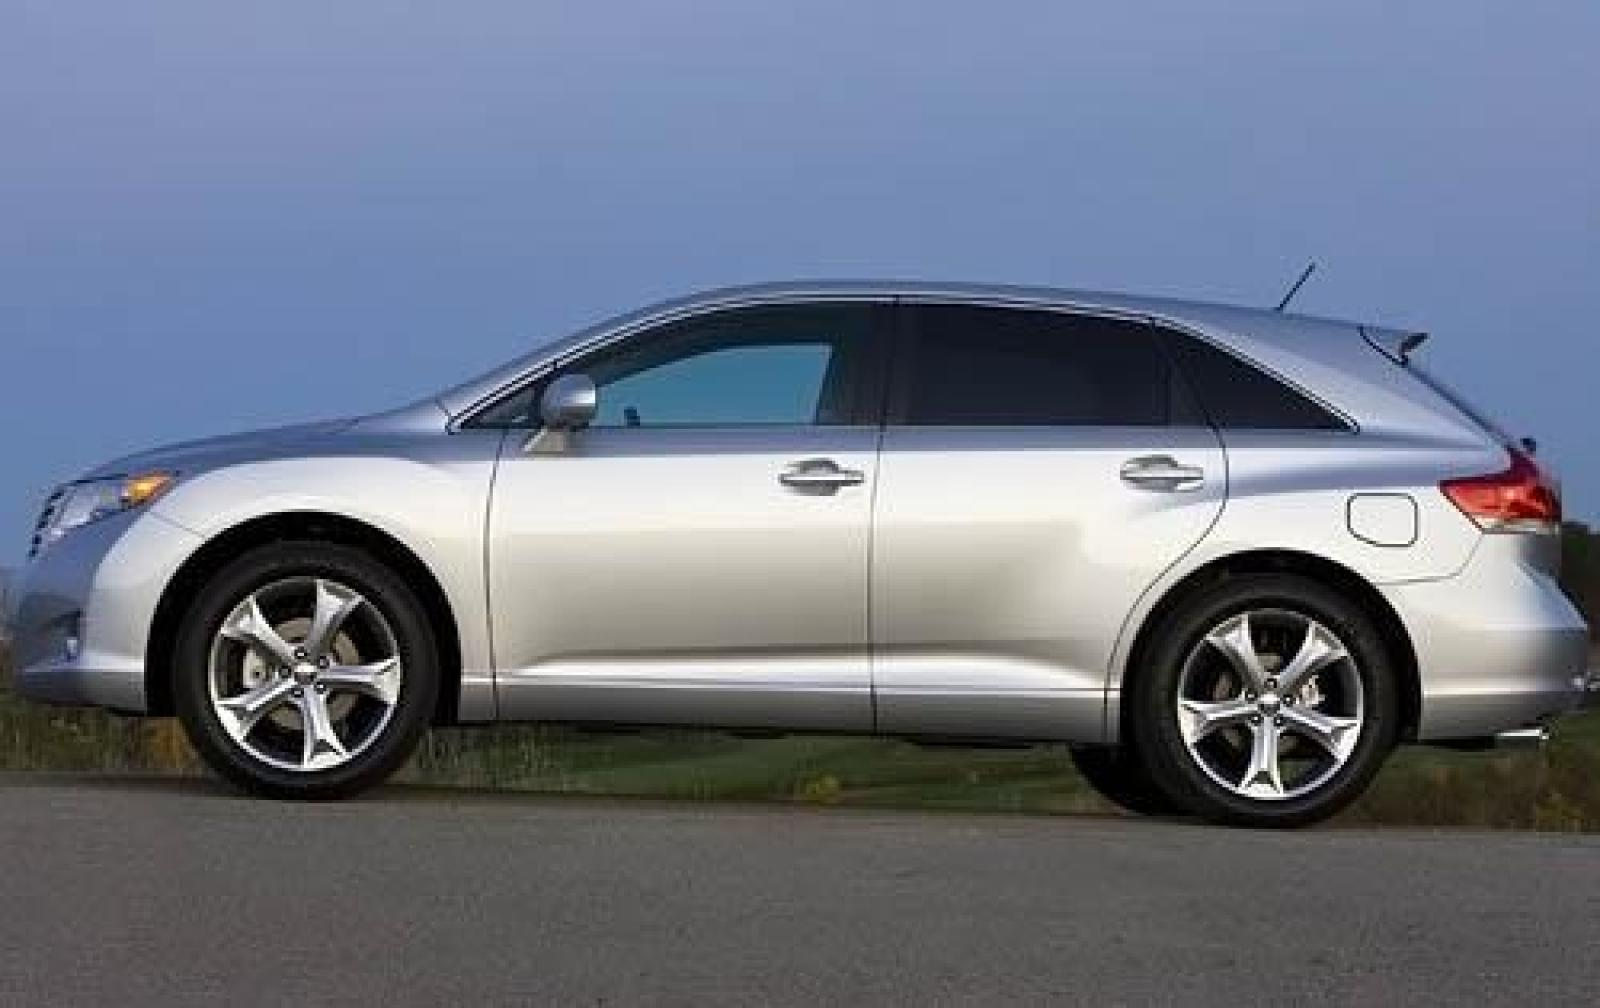 2010 toyota venza information and photos zombiedrive. Black Bedroom Furniture Sets. Home Design Ideas